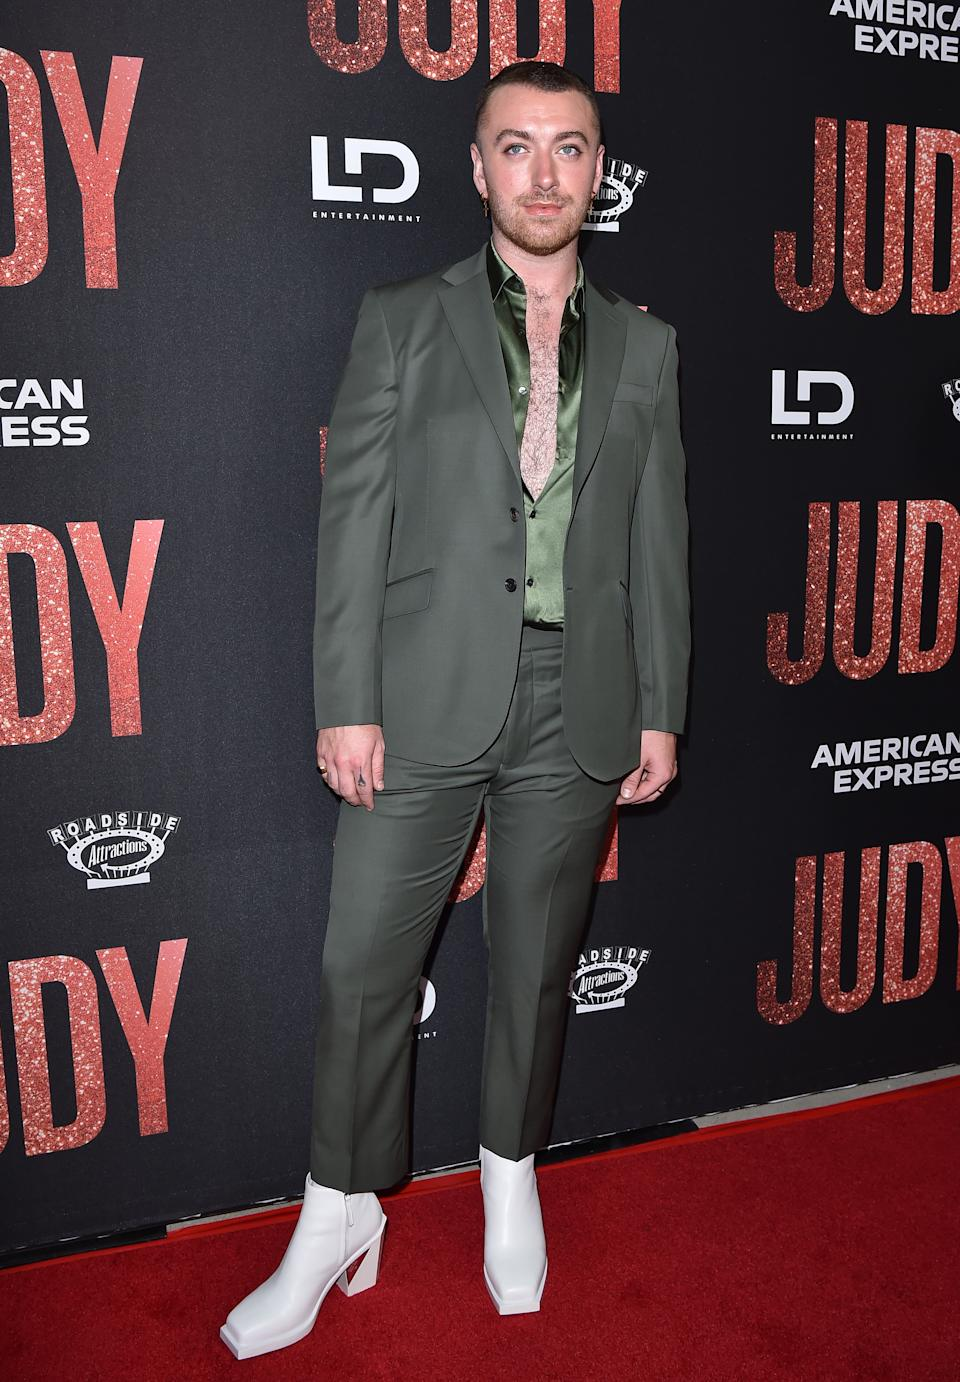 """BEVERLY HILLS, CALIFORNIA - SEPTEMBER 19: Sam Smith attends the LA Premiere of Roadside Attraction's """"Judy"""" at Samuel Goldwyn Theater on September 19, 2019 in Beverly Hills, California. (Photo by Axelle/Bauer-Griffin/FilmMagic)"""